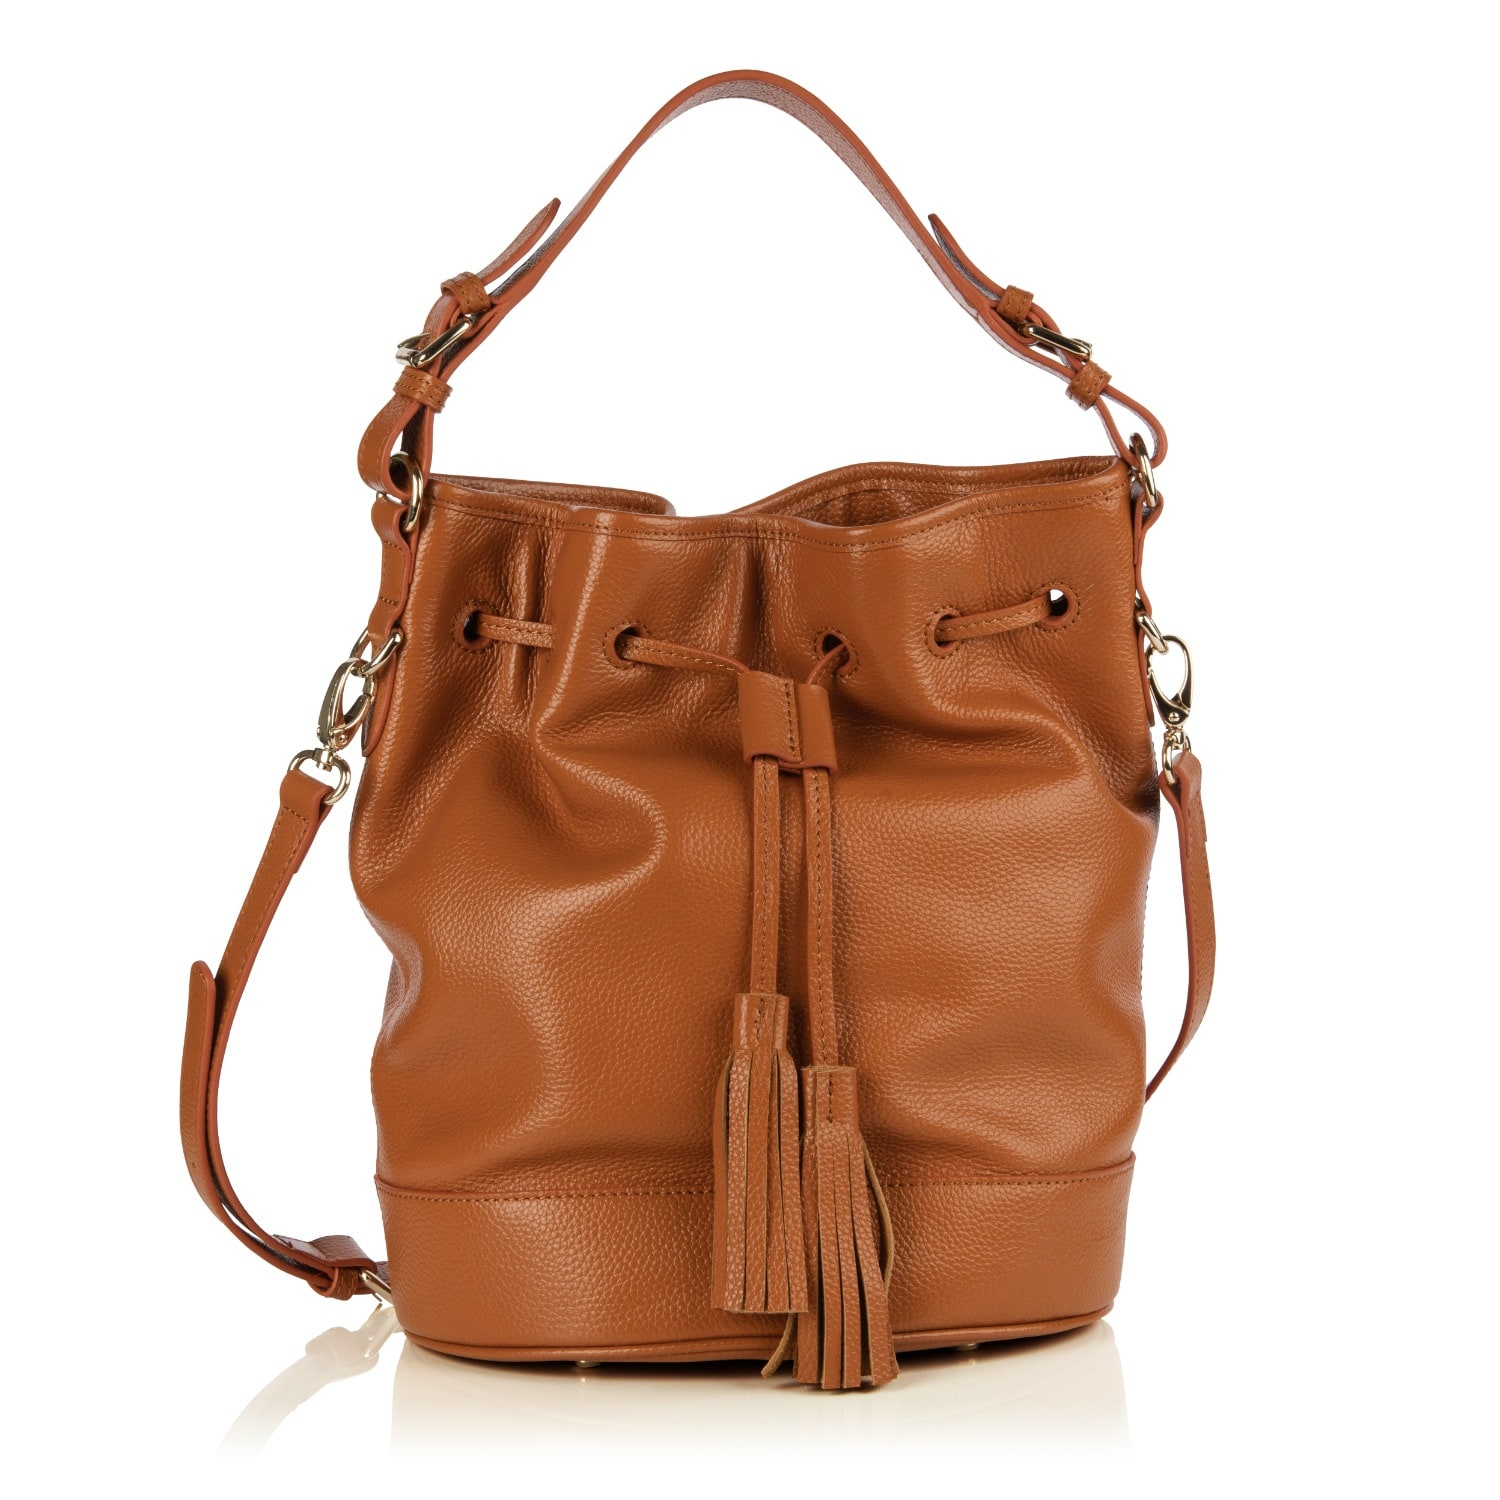 Nadia Minkoff - The Islington Bucket Bag Cognac